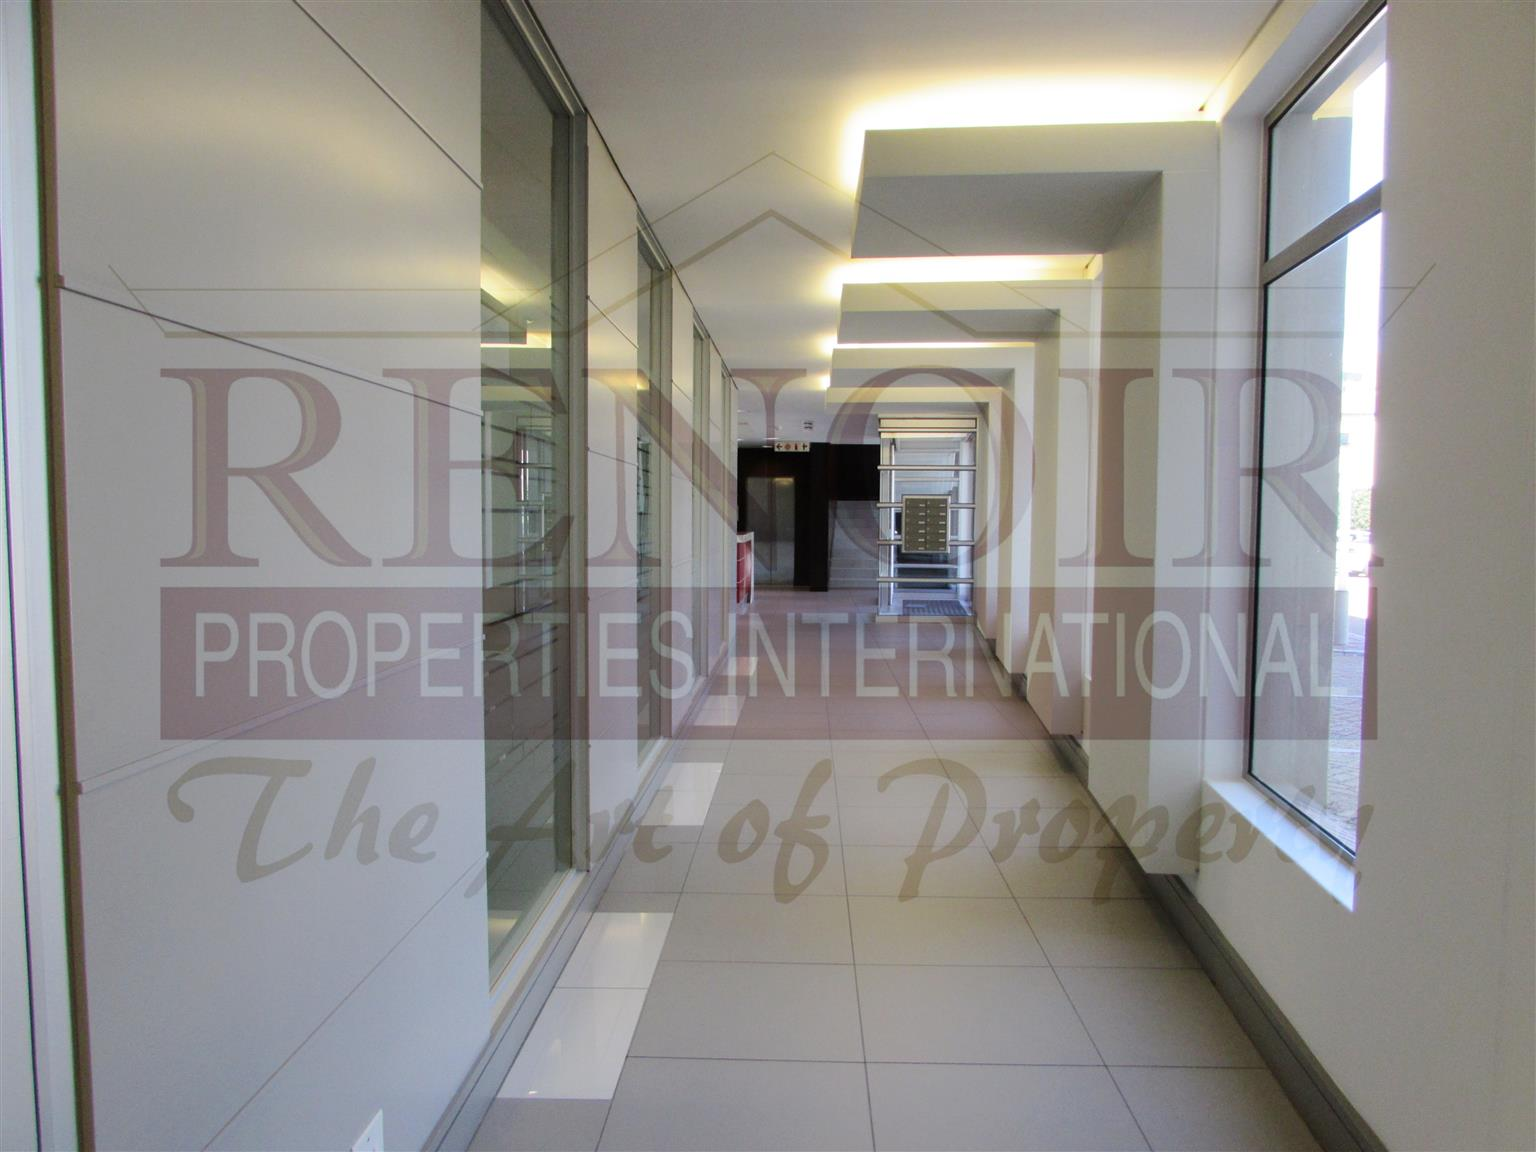 CENTURY CITY: 104m2 Office to Let